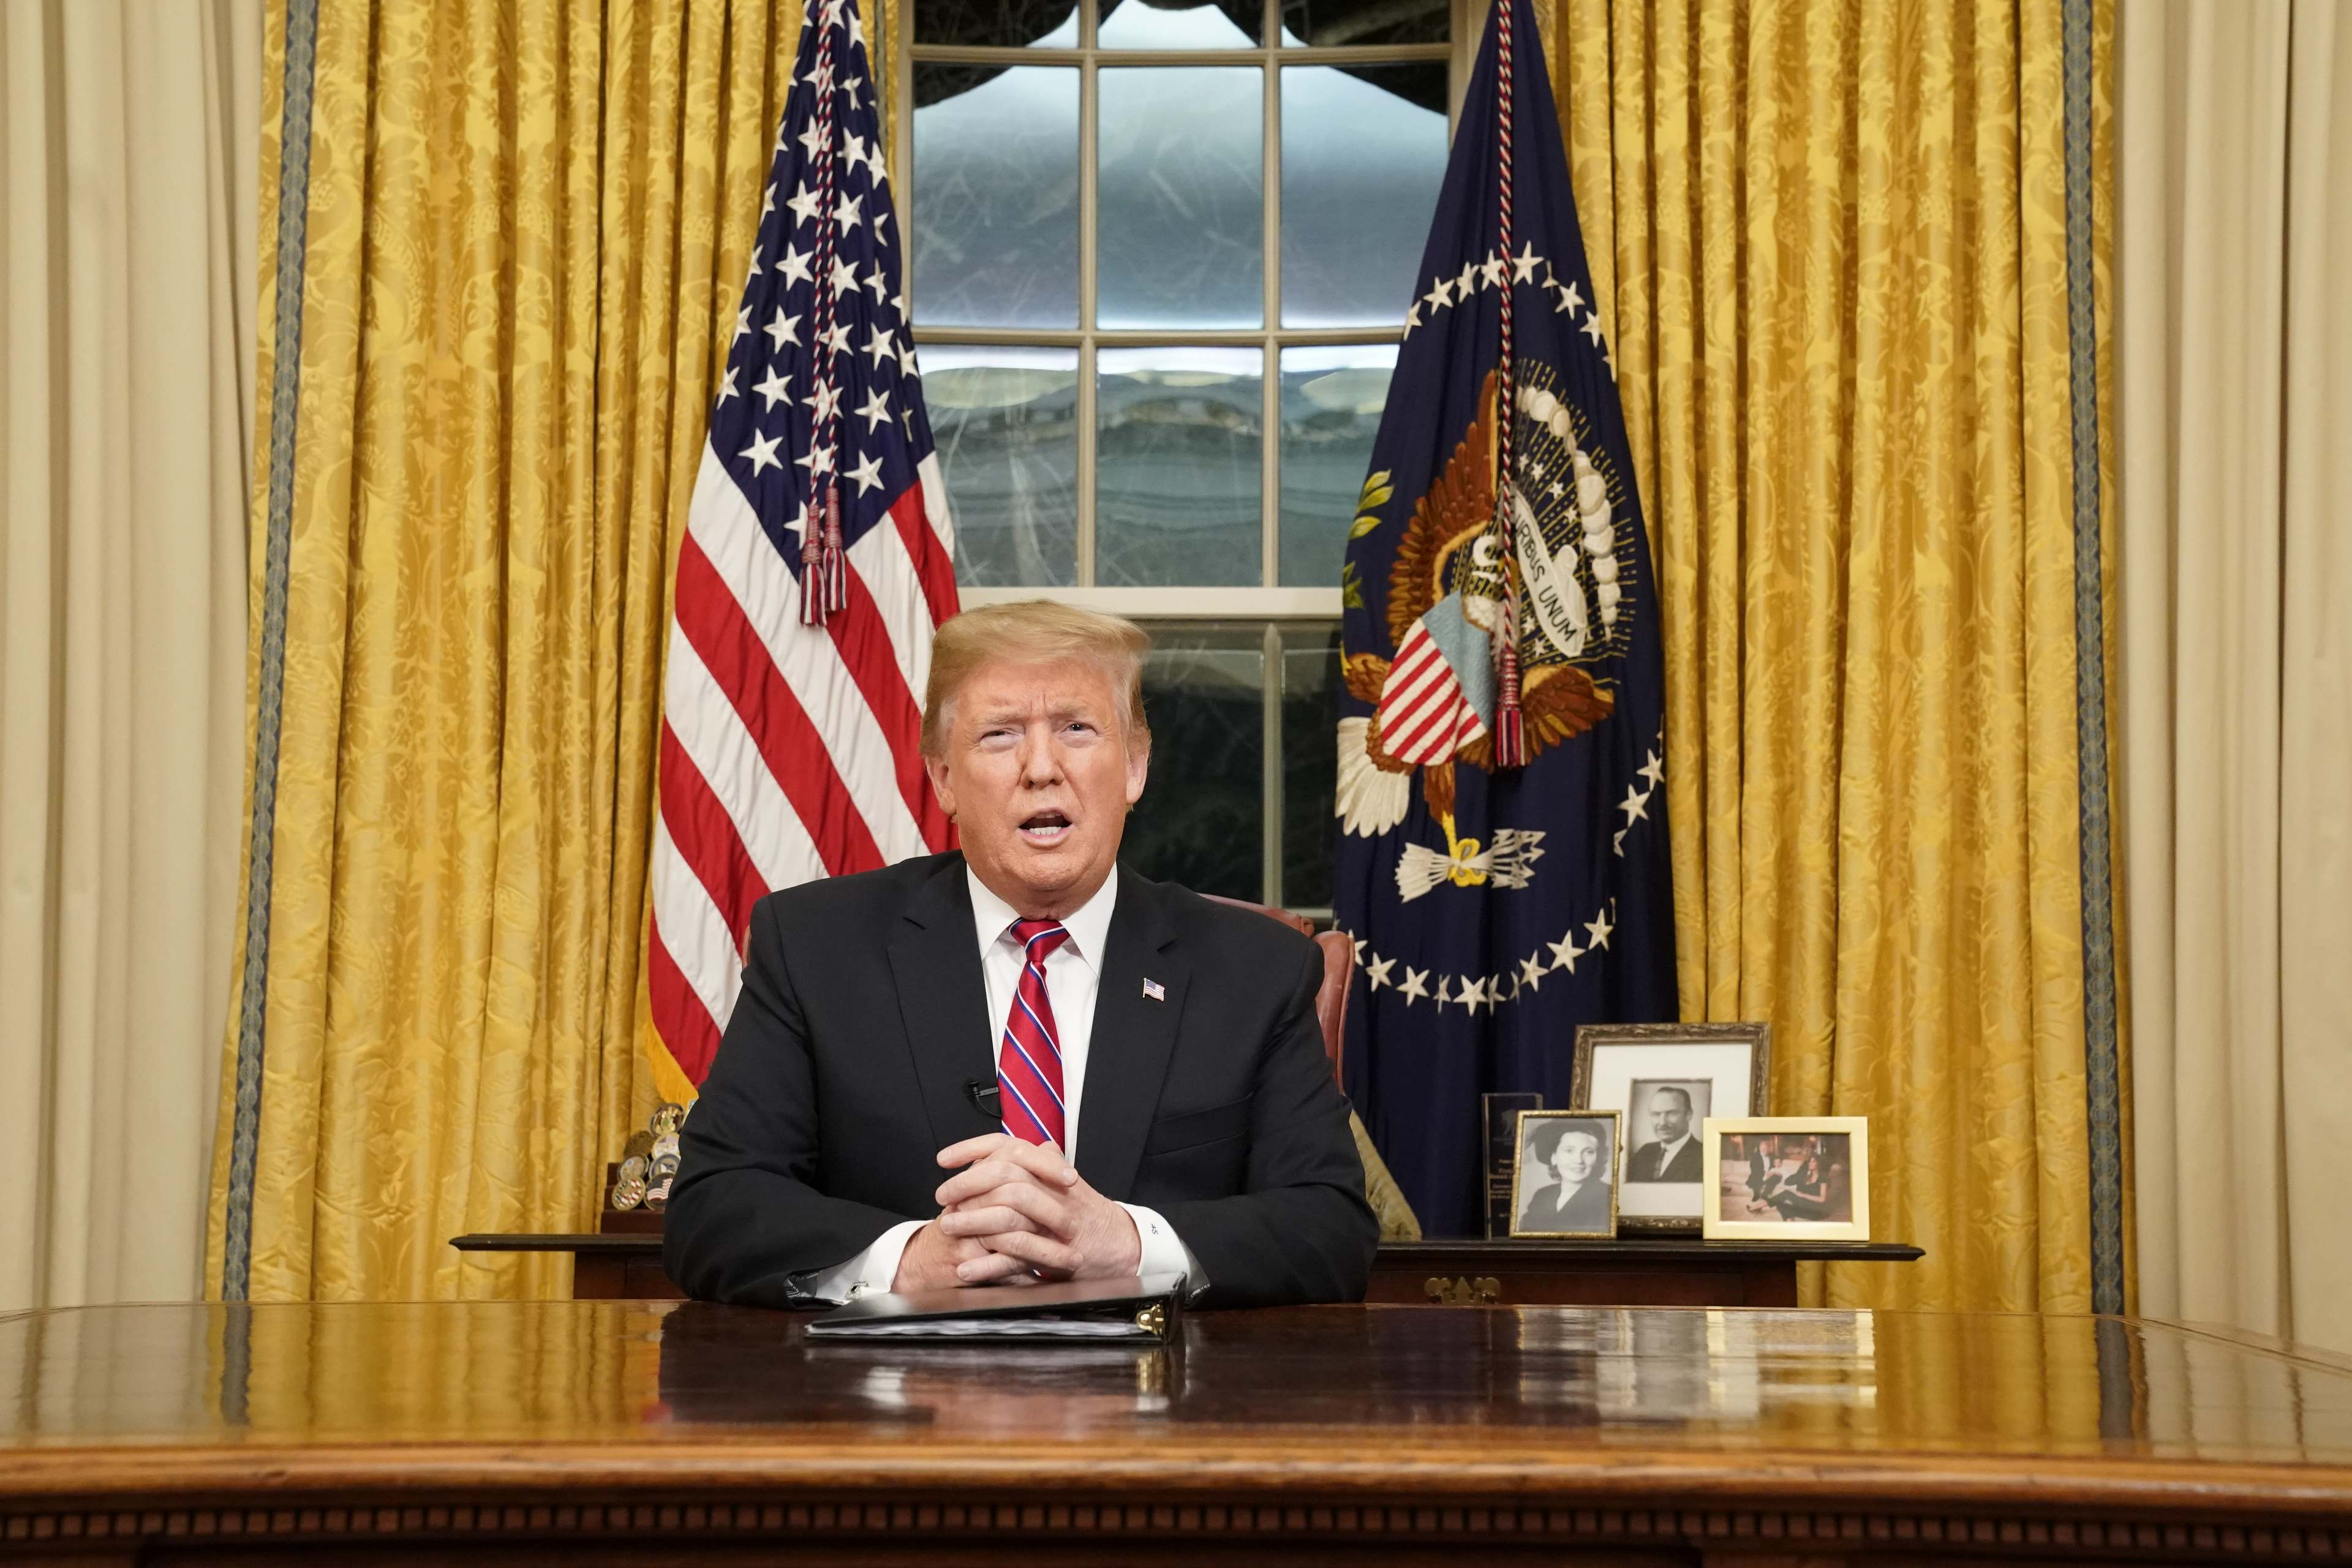 Trump Rants About Border Wall, Migrant Caravans Ahead Of State Of The Union Address